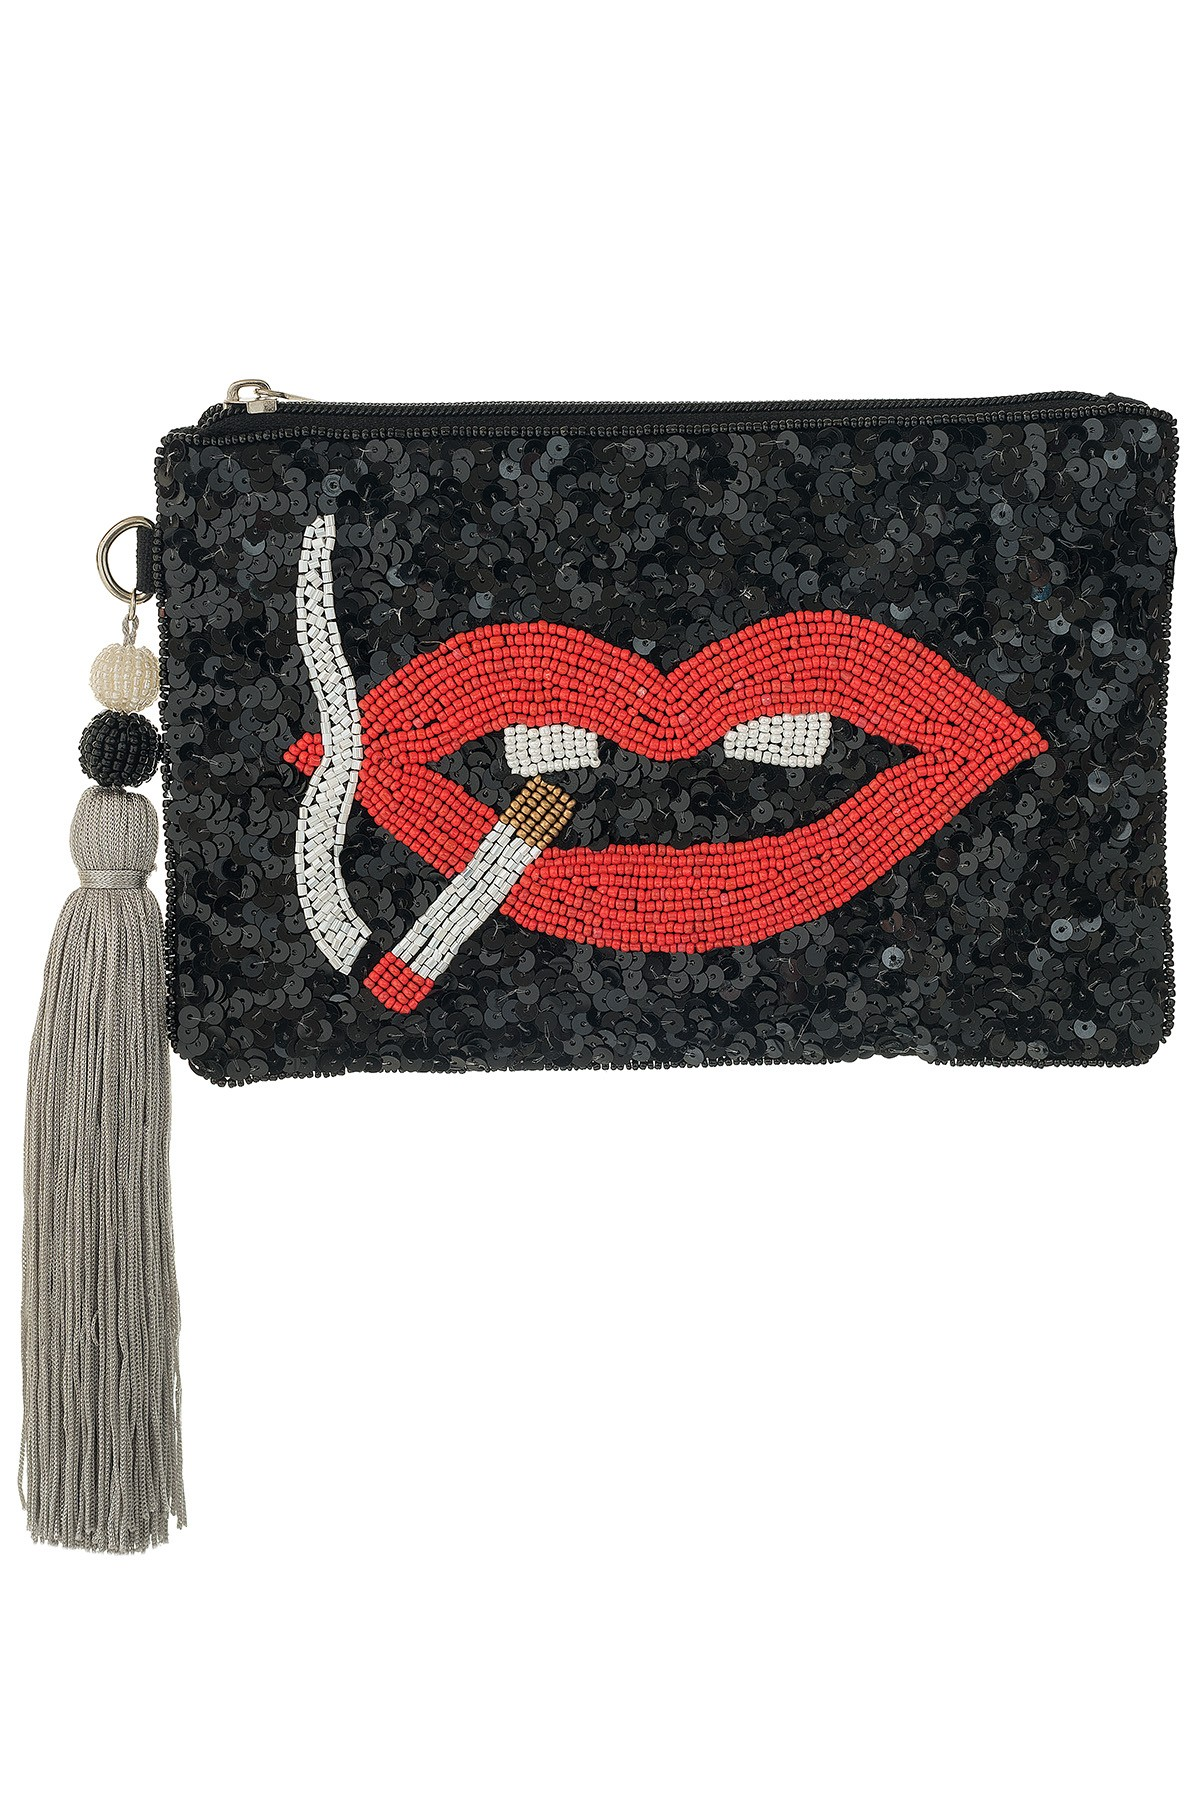 LIPS WITH CIGARETTE Medium Clutch